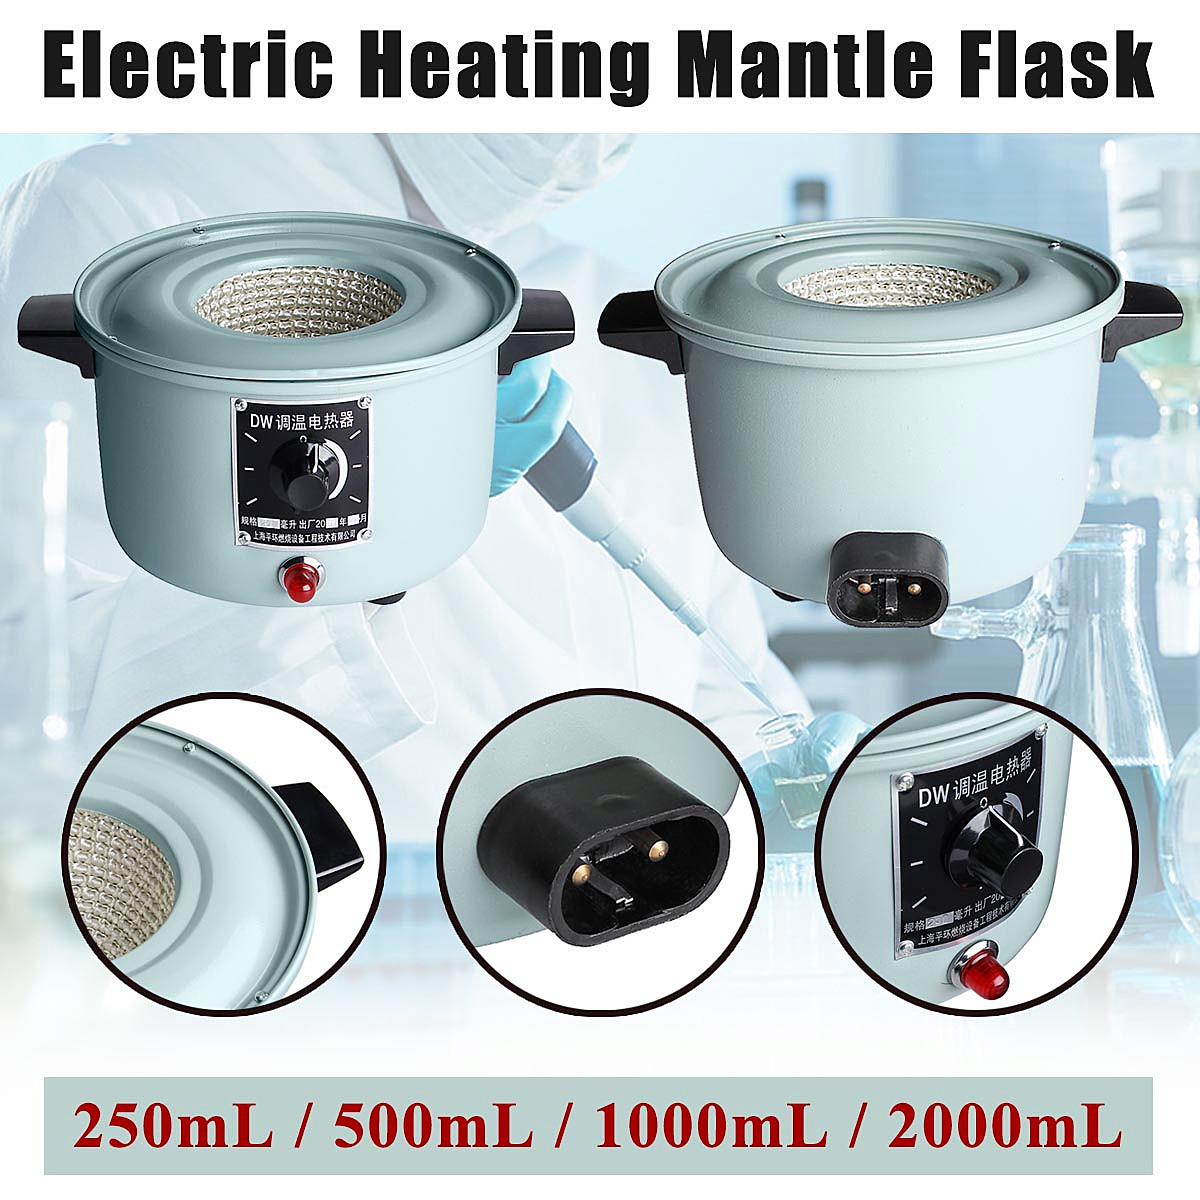 250/500/1000/2000mL 220V Lab Flask Electric Heating Mantle With Thermal Regulator Adjustable Equip For Flask Lab250/500/1000/2000mL 220V Lab Flask Electric Heating Mantle With Thermal Regulator Adjustable Equip For Flask Lab